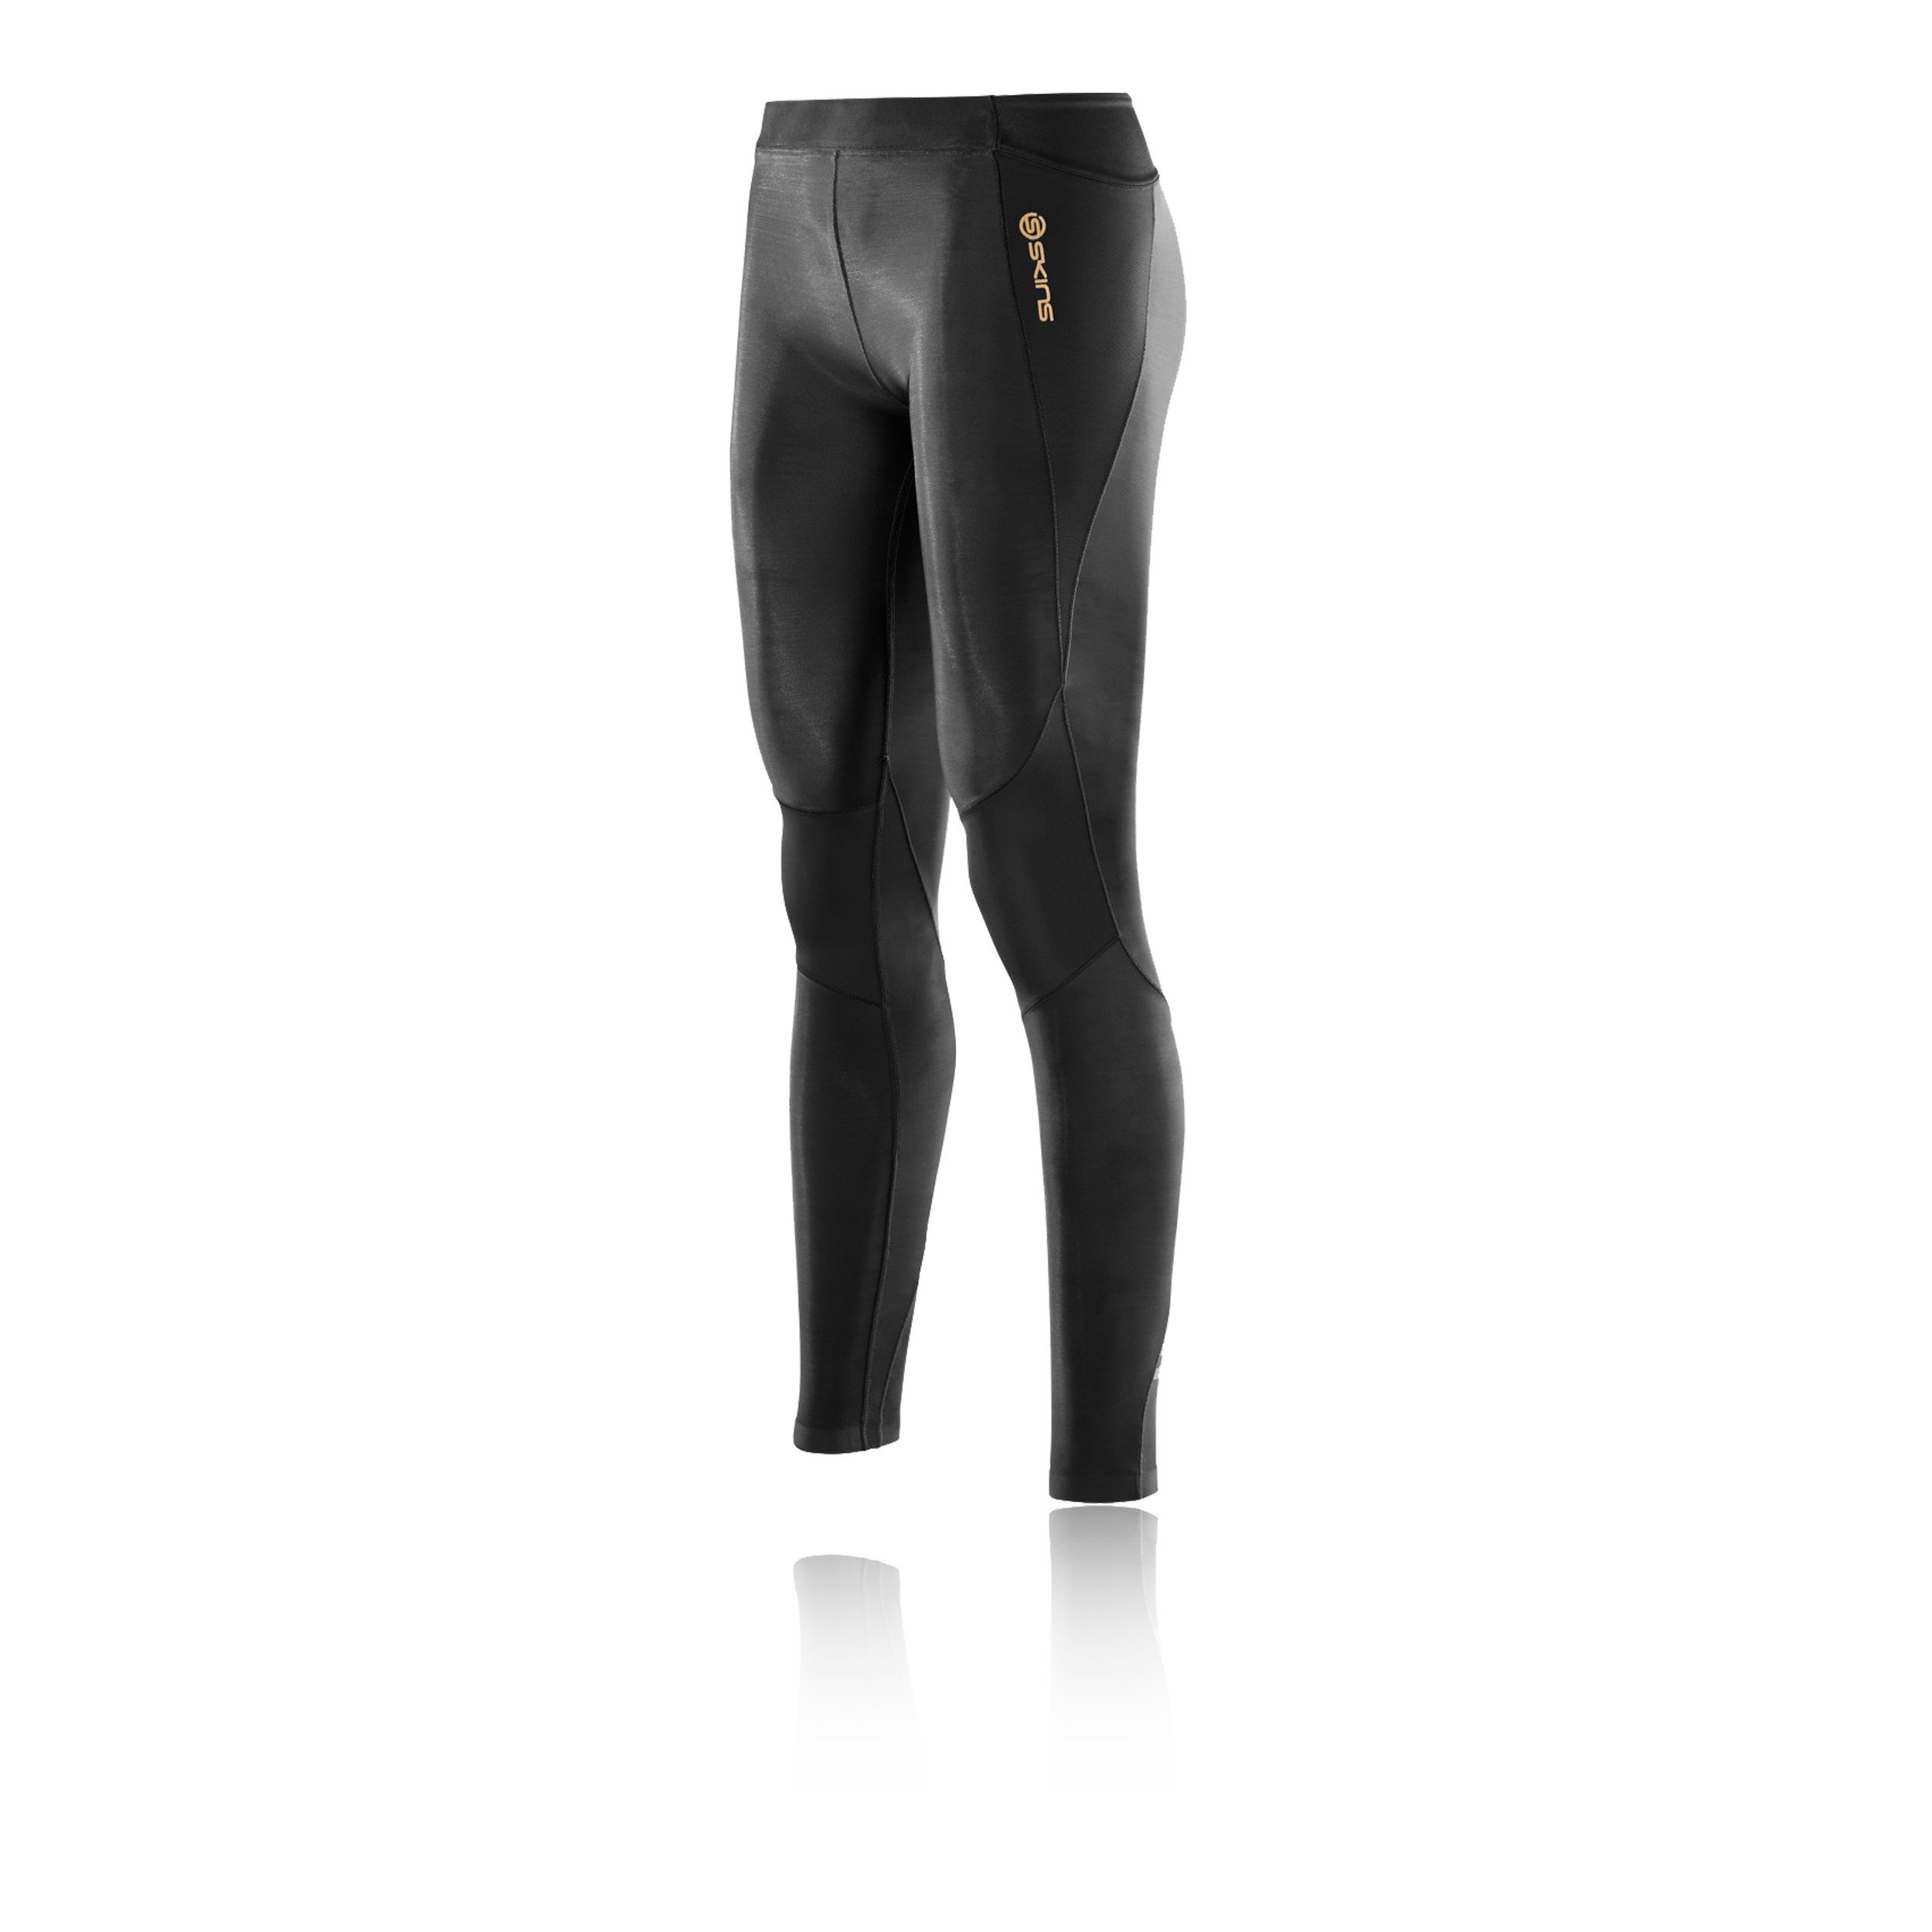 Skins Women's A400 Compression Long Tights, Black, Large